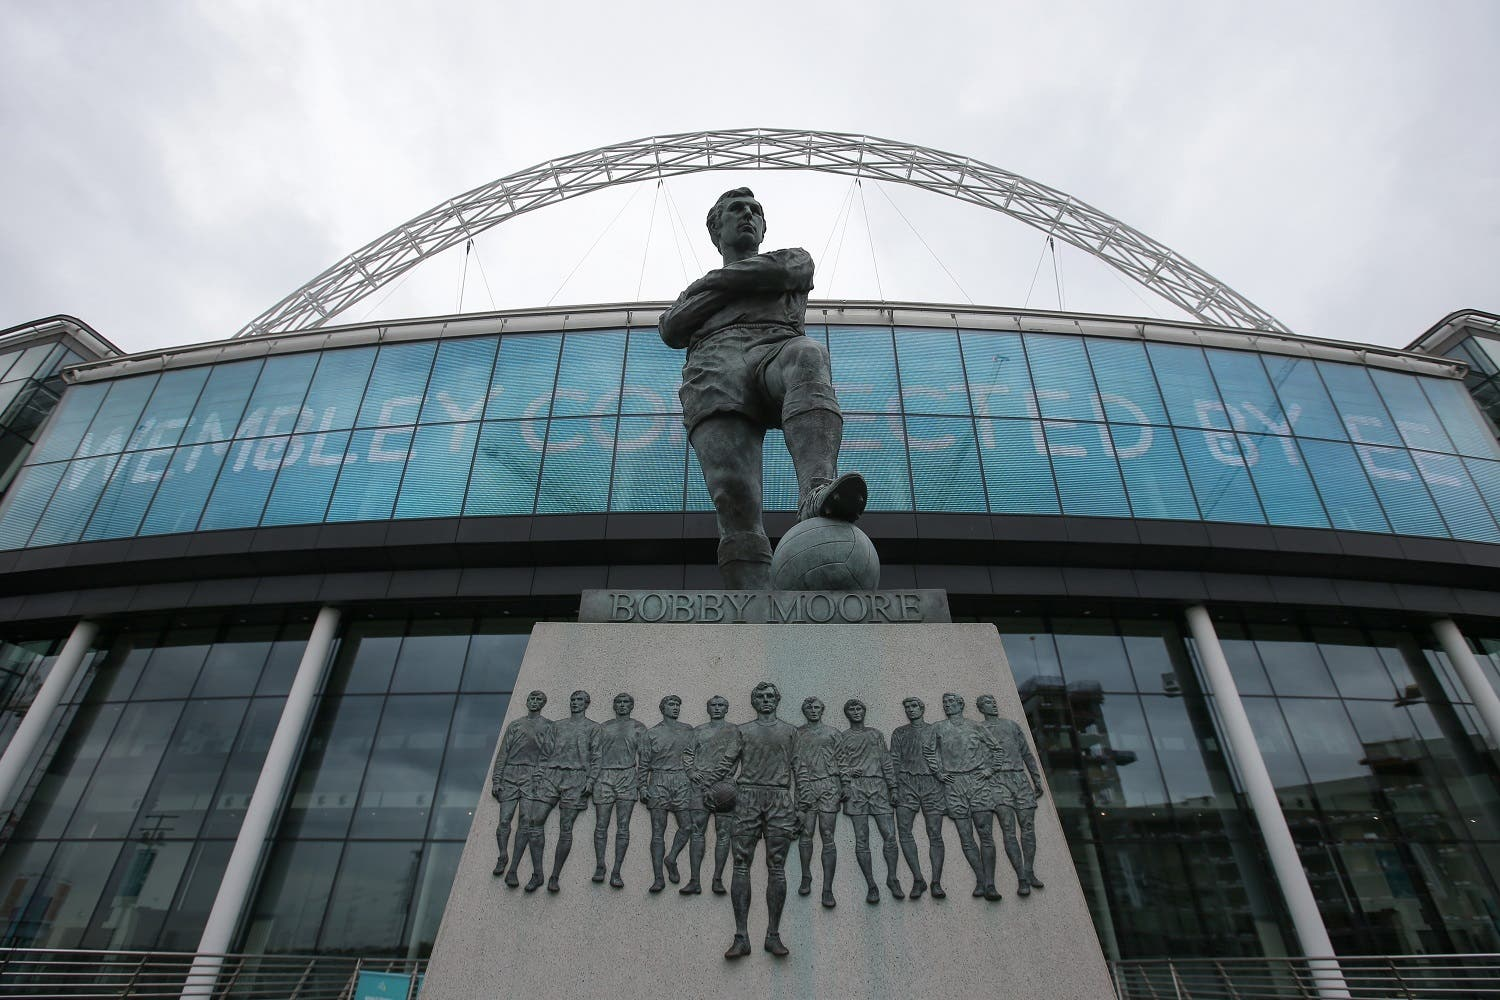 A statue of former England football captain Bobby Moore stands outside Wembley Stadium in west London, on April 27, 2018. The Football Association have received an offer to buy iconic Wembley stadium in a shock move that increases the chances of an NFL team taking up permanent residence in London. (AFP)